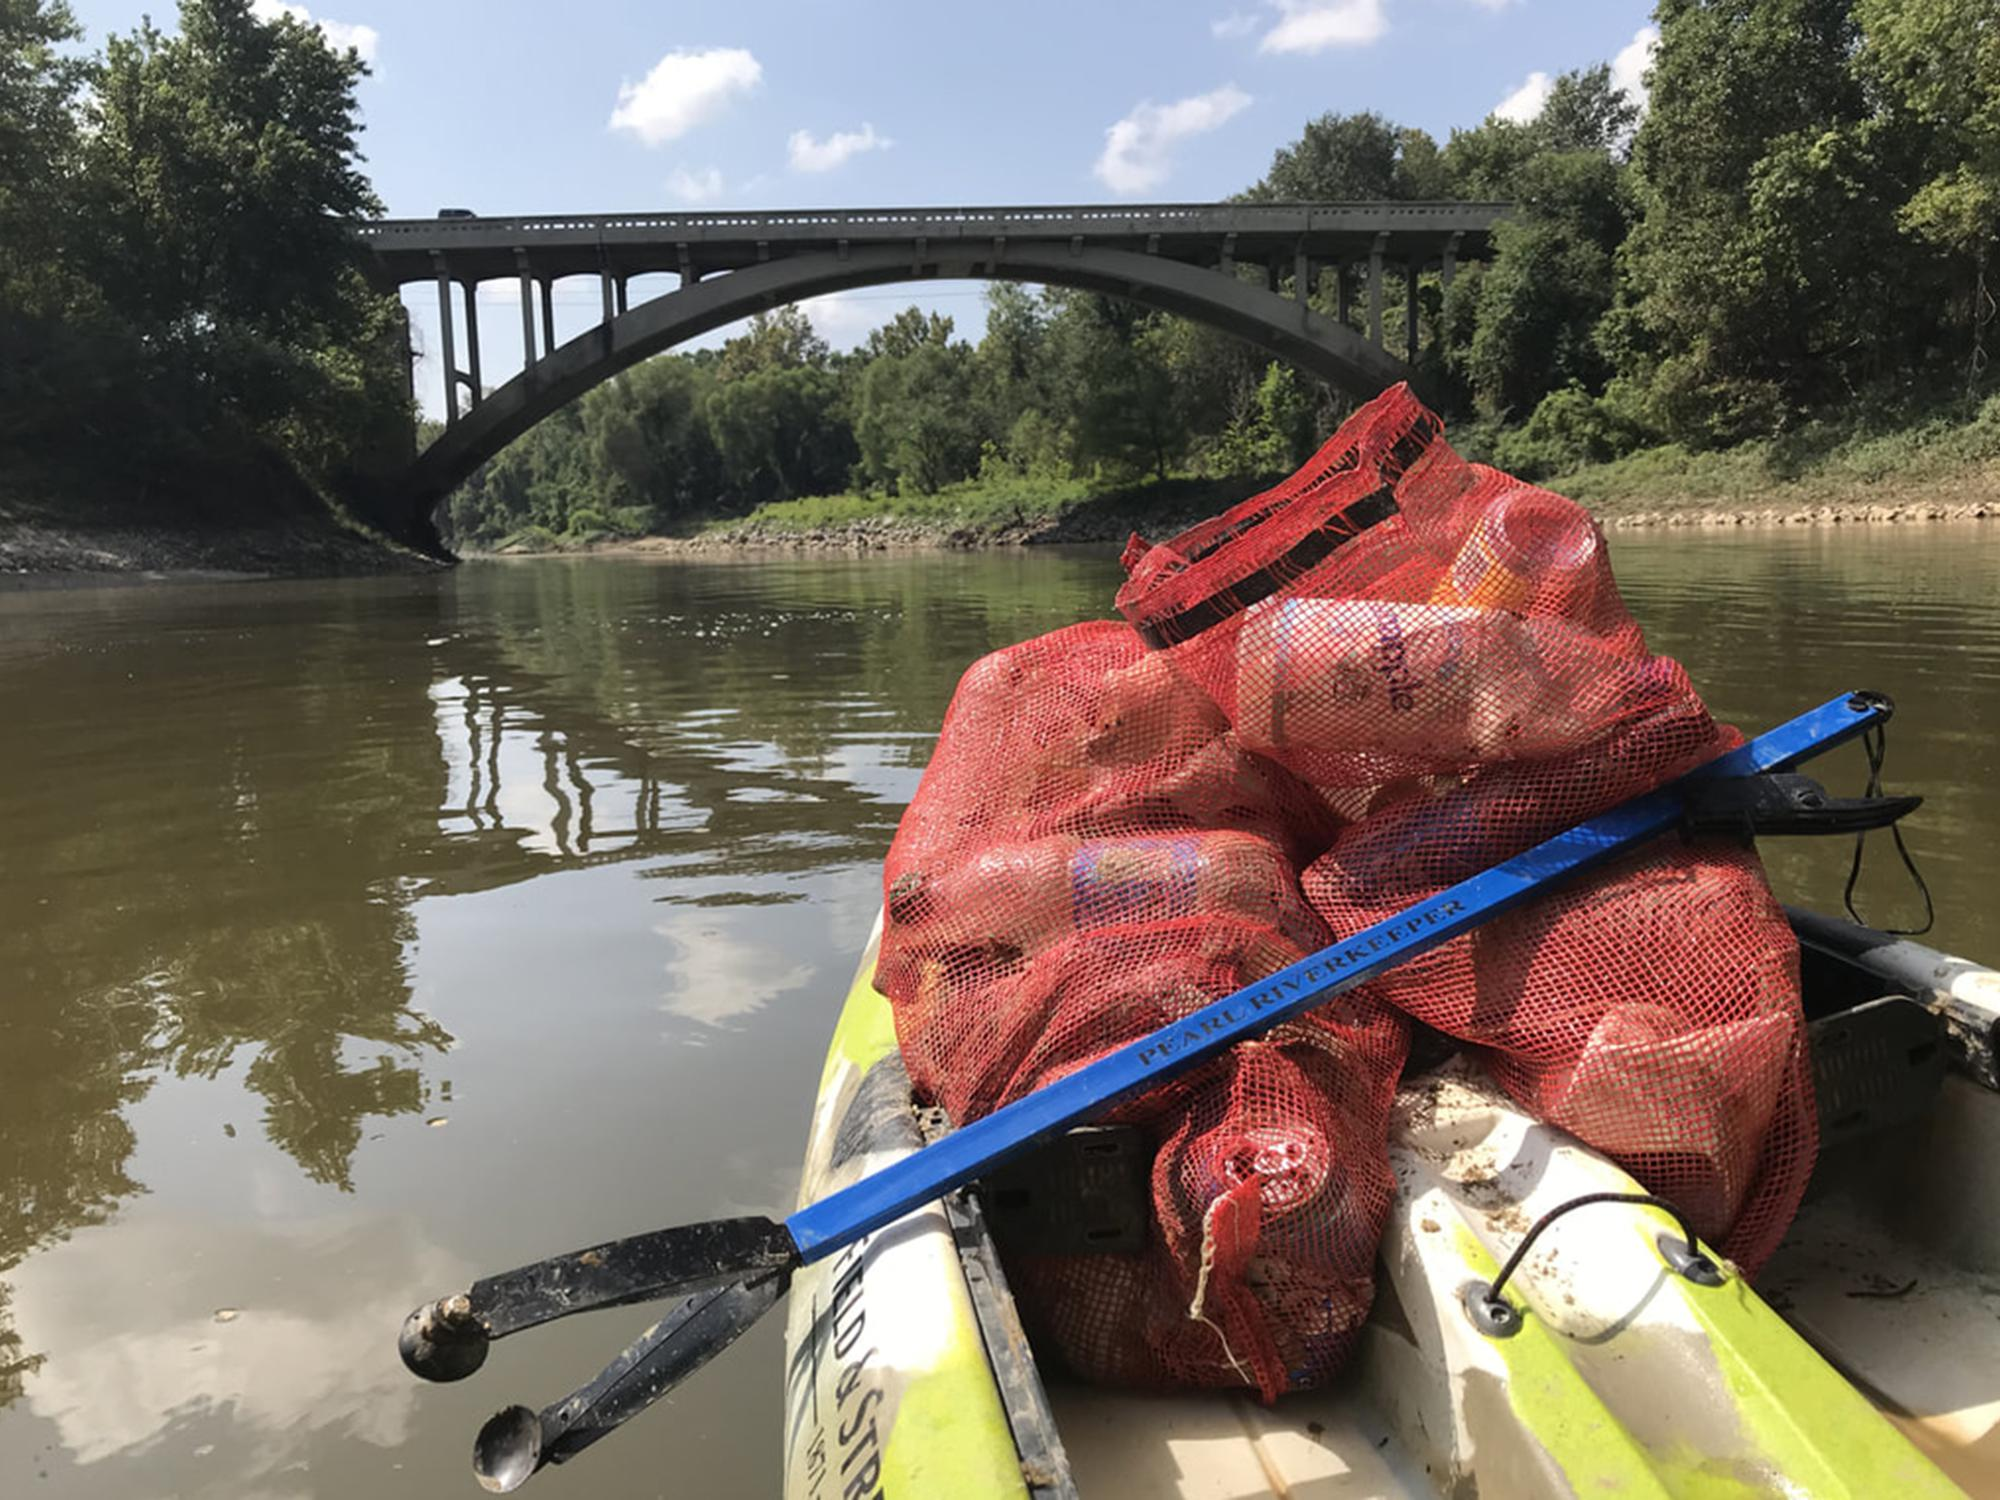 """The front of a kayak has two red meshed bags containing litter and a blue trash-grabbing tool with the words """"Pearl Riverkeeper"""" printed on it. The boat is on a small river and approaching a highway bridge."""